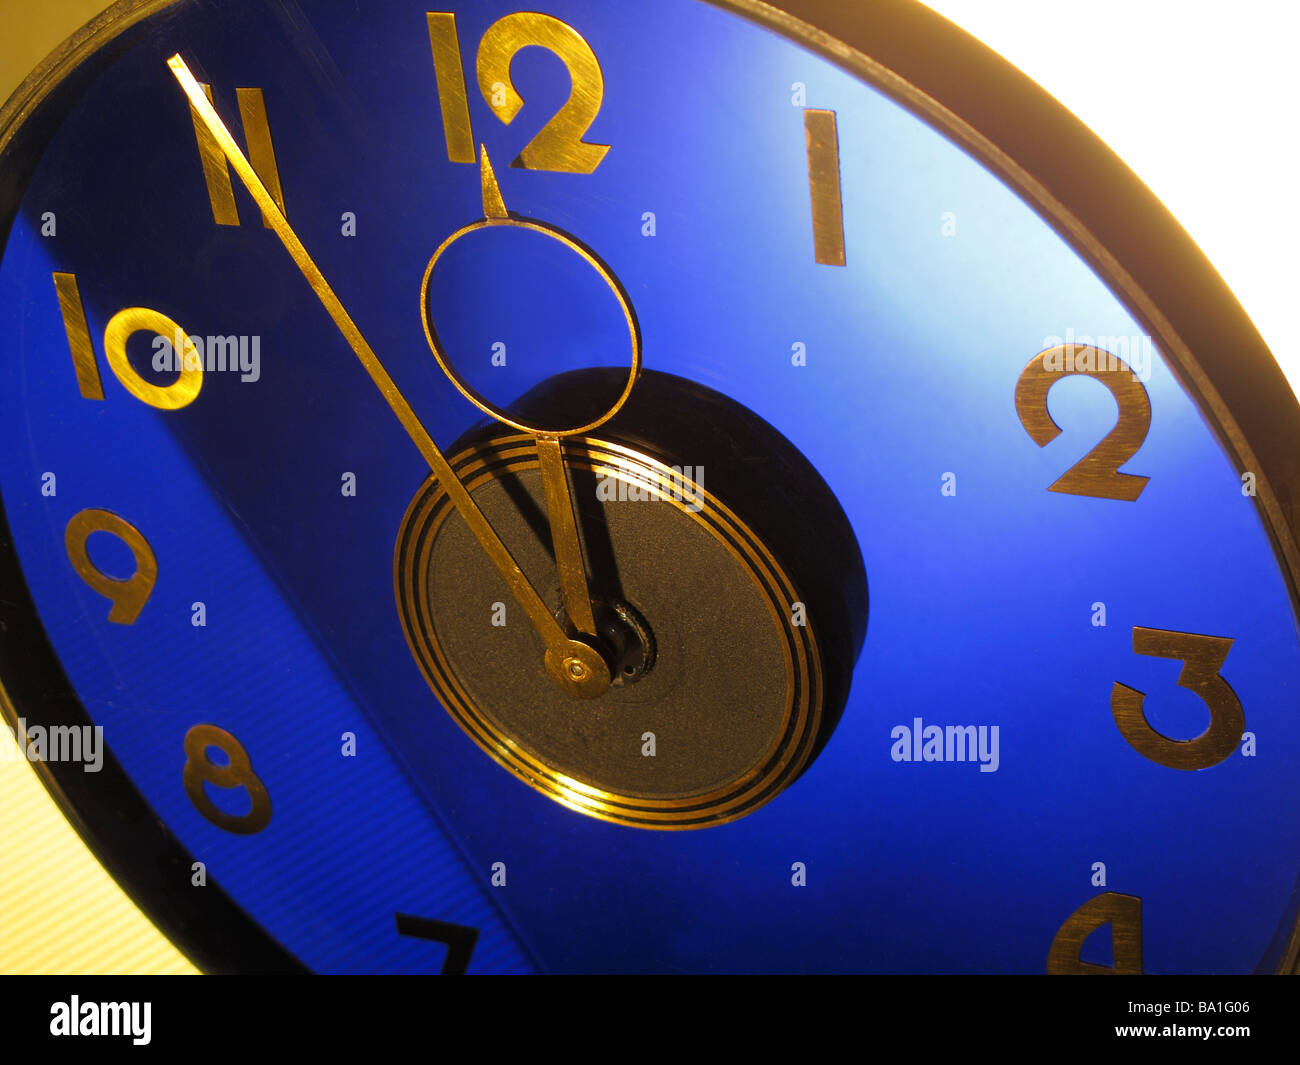 Pointer five manage detail admission one clock twelve symbolism in copied to leg going stock exchang Fuenf vor Zwoelf - Stock Image